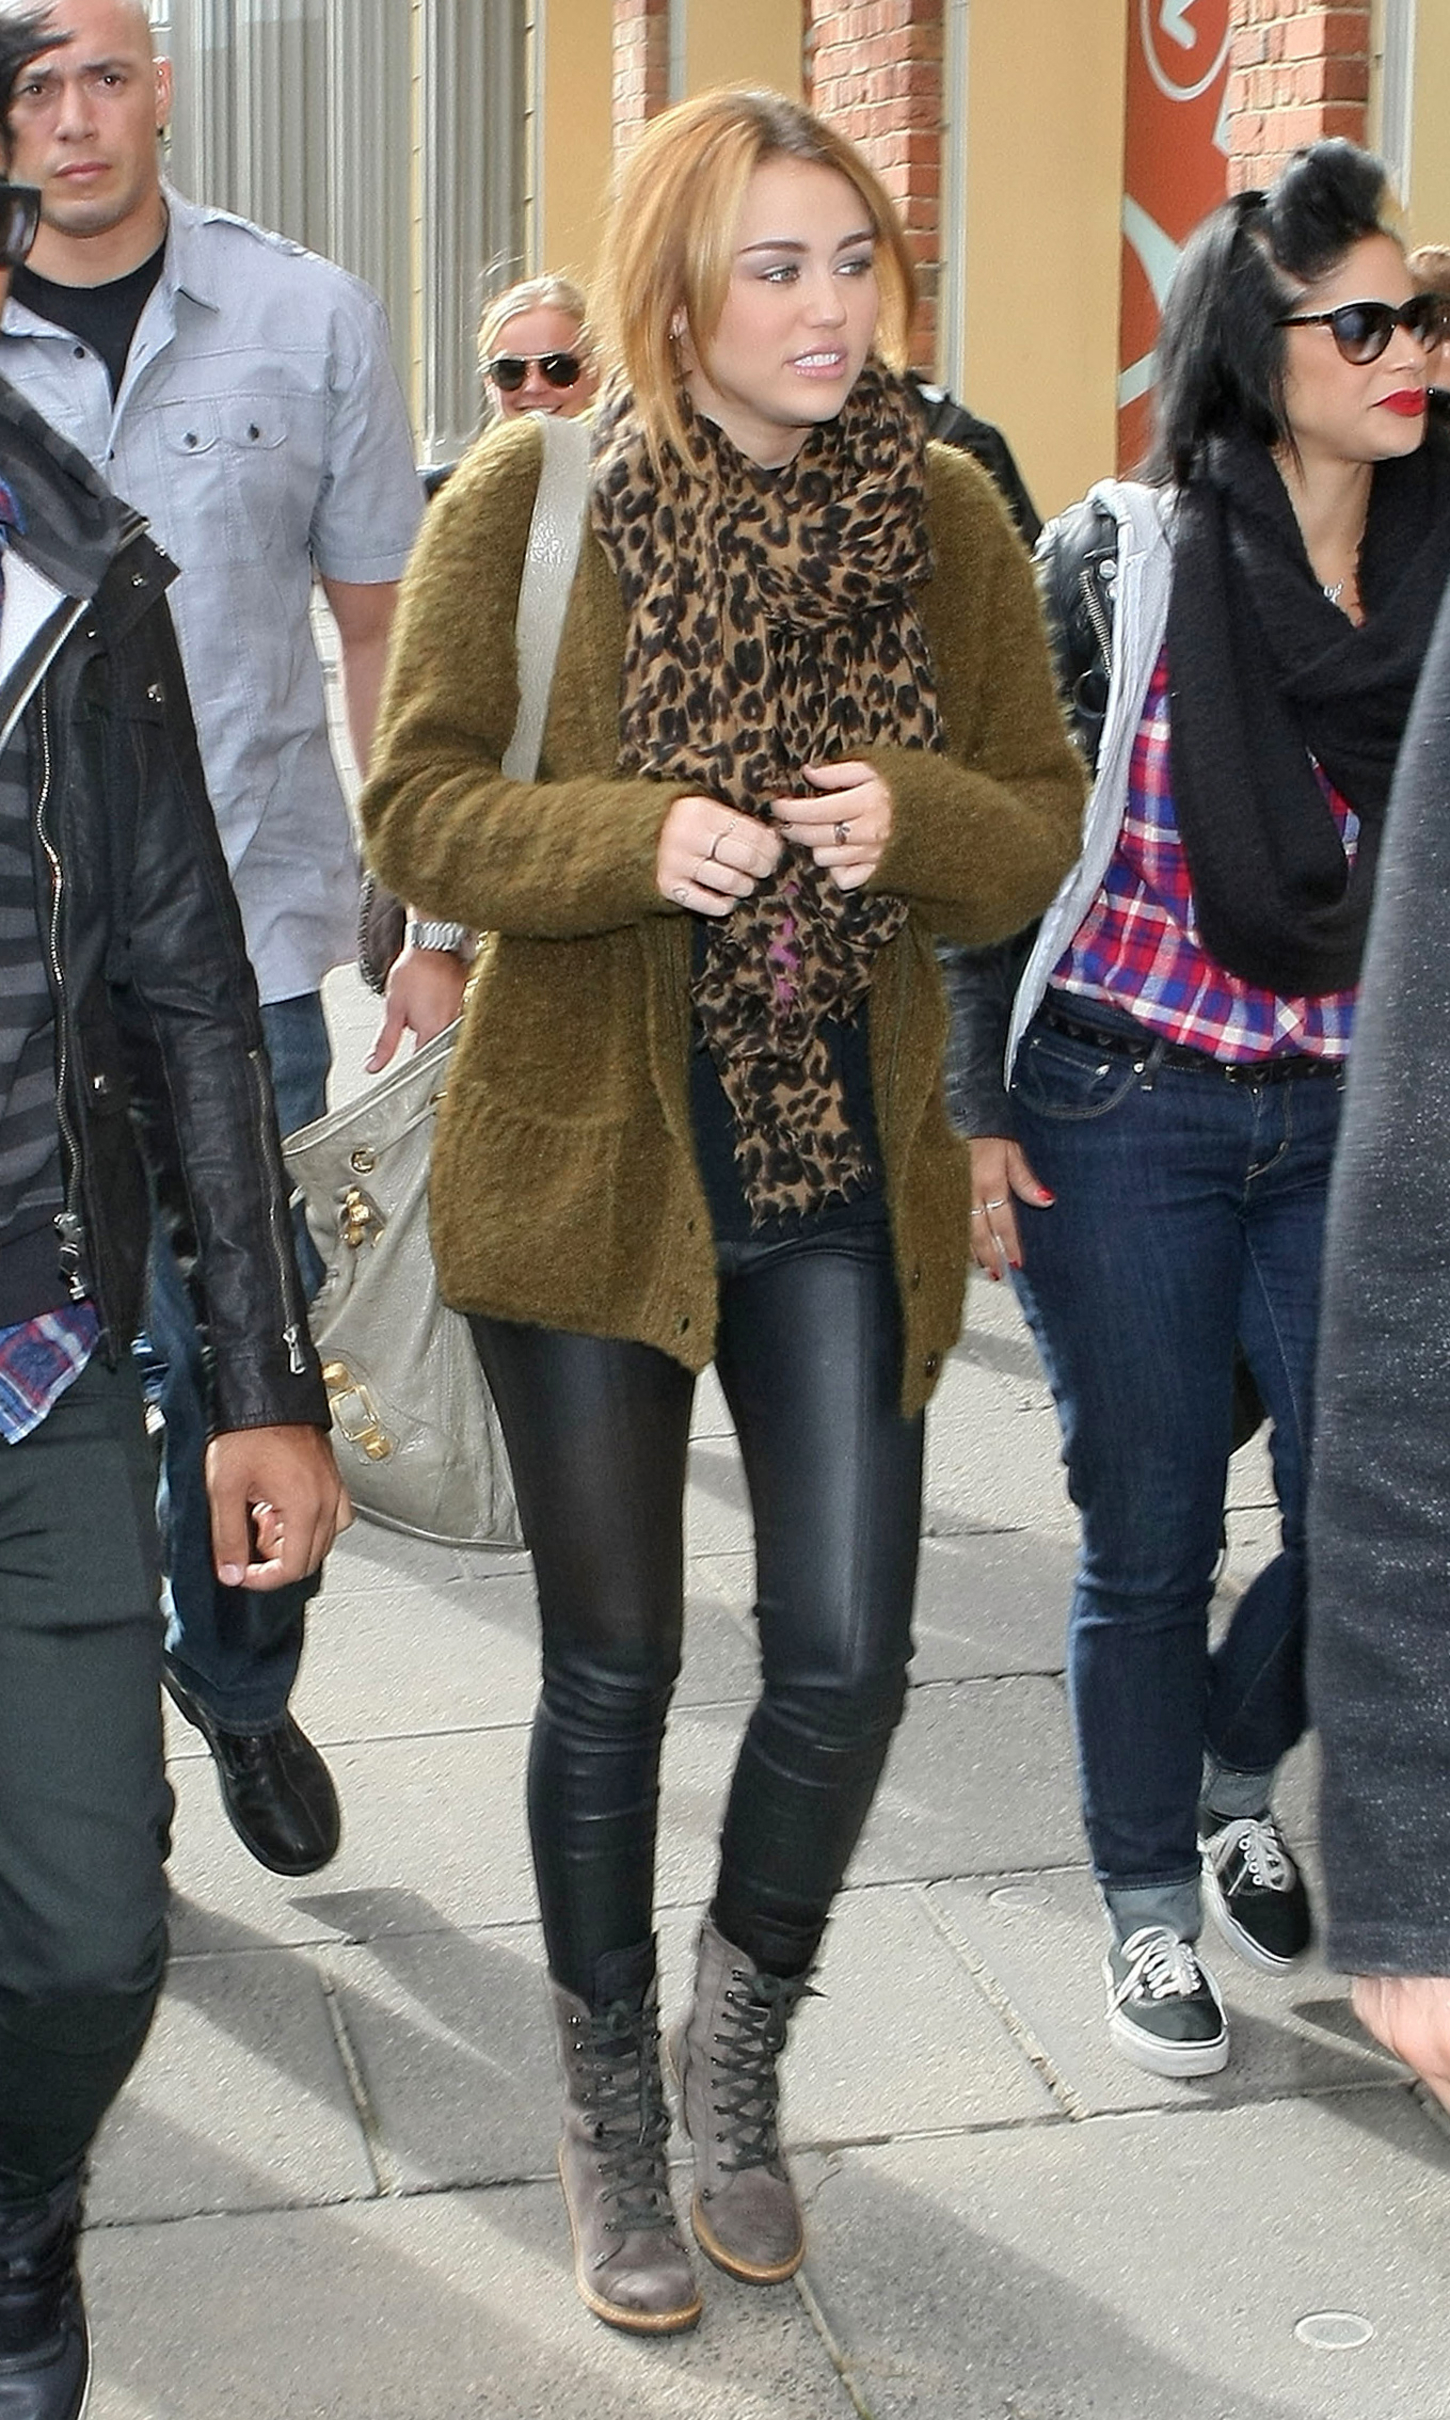 http://www.gotceleb.com/wp-content/uploads/celebrities/miley-cyrus/wearing-leather-pants-in-melbourne-june-23-201/Miley%20Cyrus%20Wearing%20Leather%20Pants%20in%20Melbourne-06.jpg